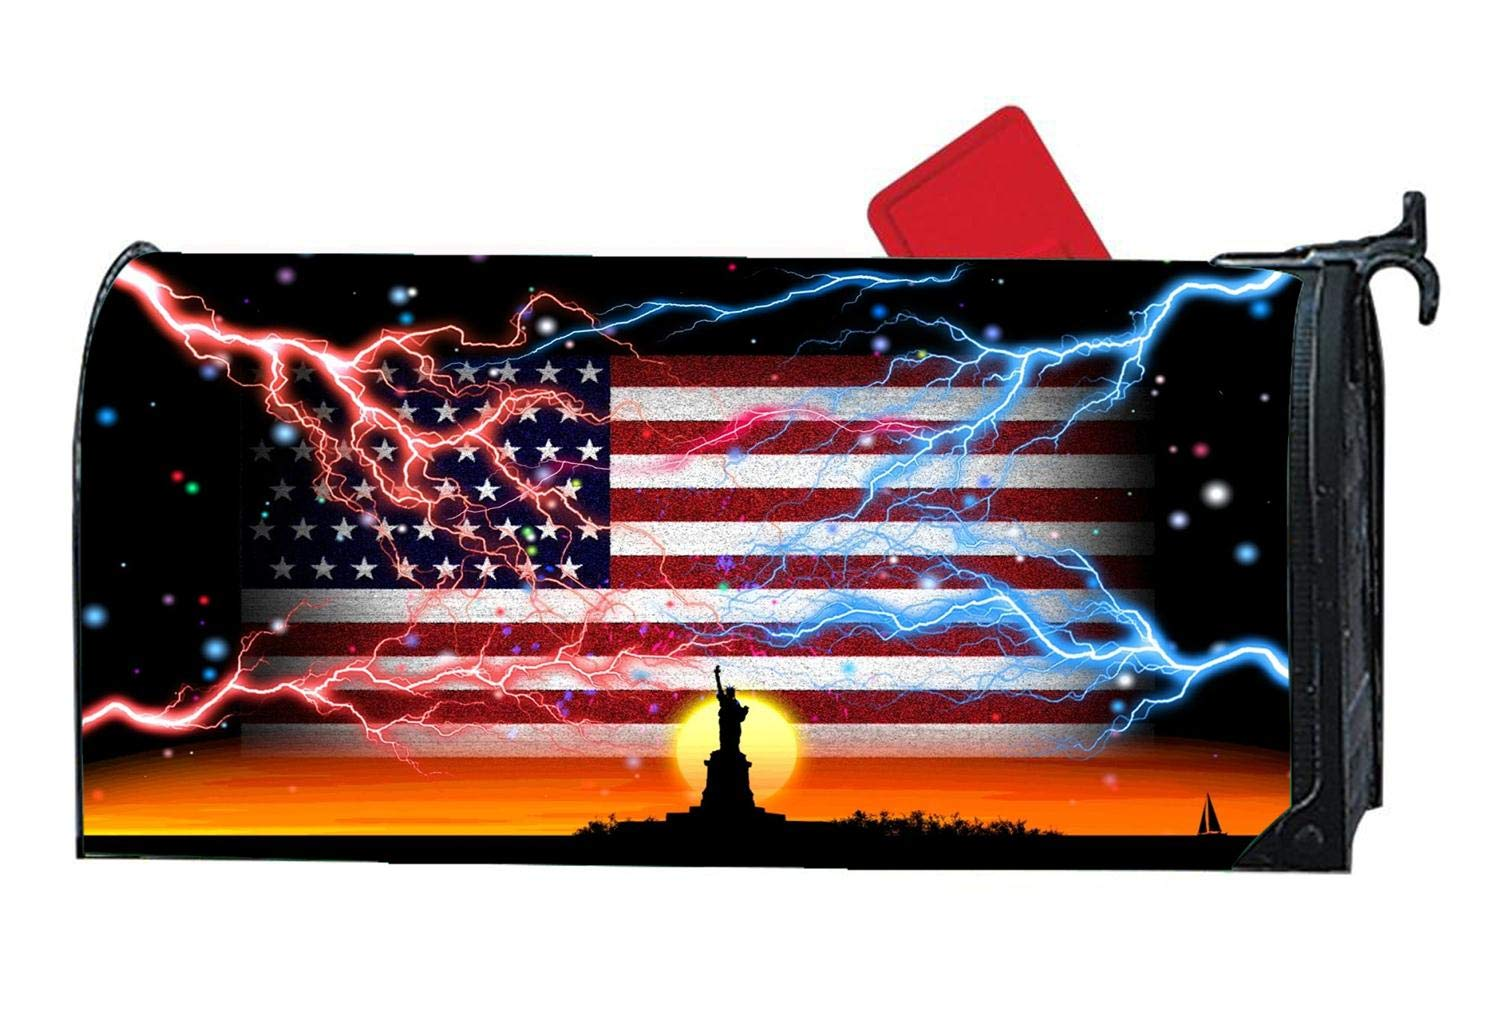 Mailbox Cover Magnetic Personalized Mail Wrap Mailbox Makeover Cover - Weatherproof Vinyl, Fit Standard 6.5'' x 19'' Mailboxes - Luxury American Flag